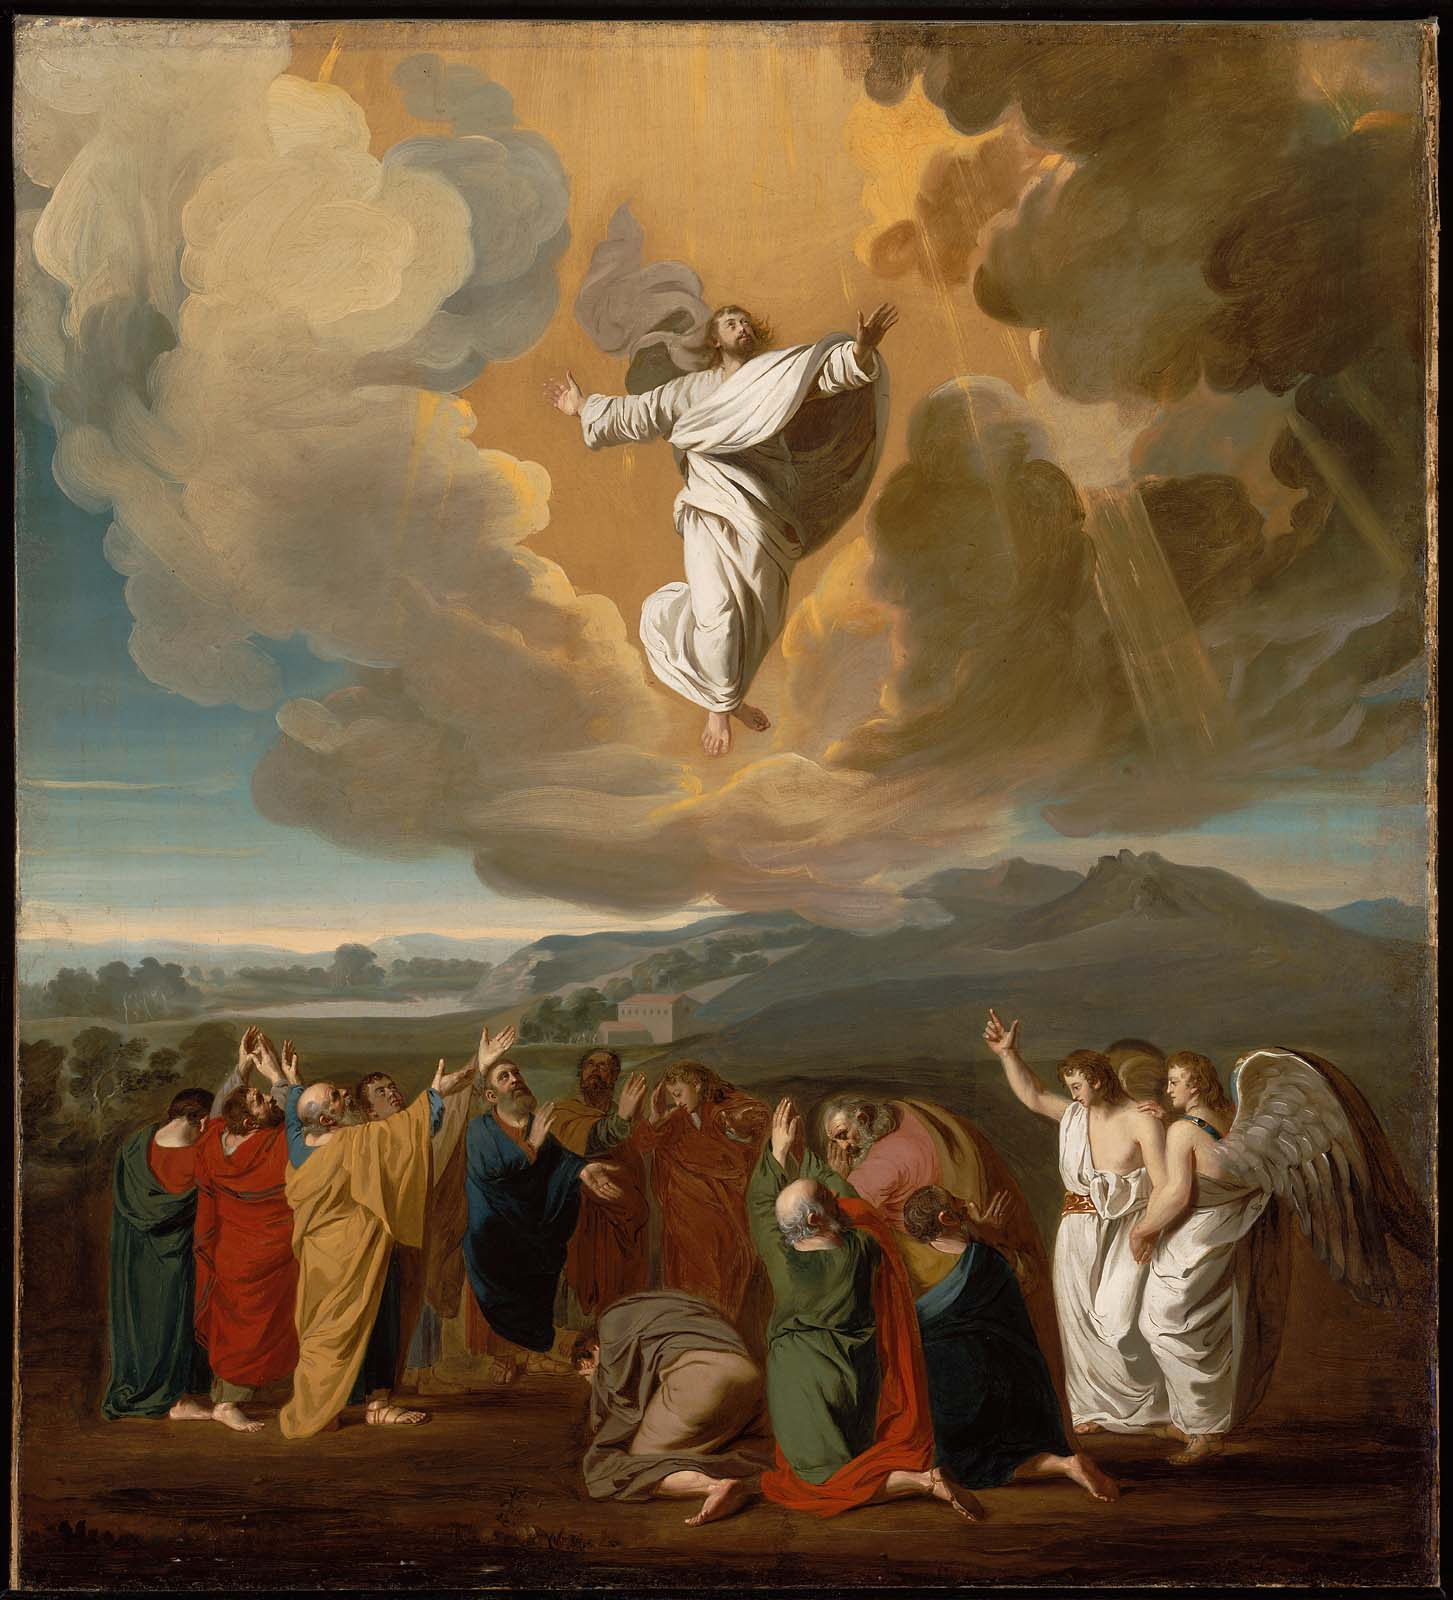 Jesus ascension to heaven by John Singleton Copley 1775-2